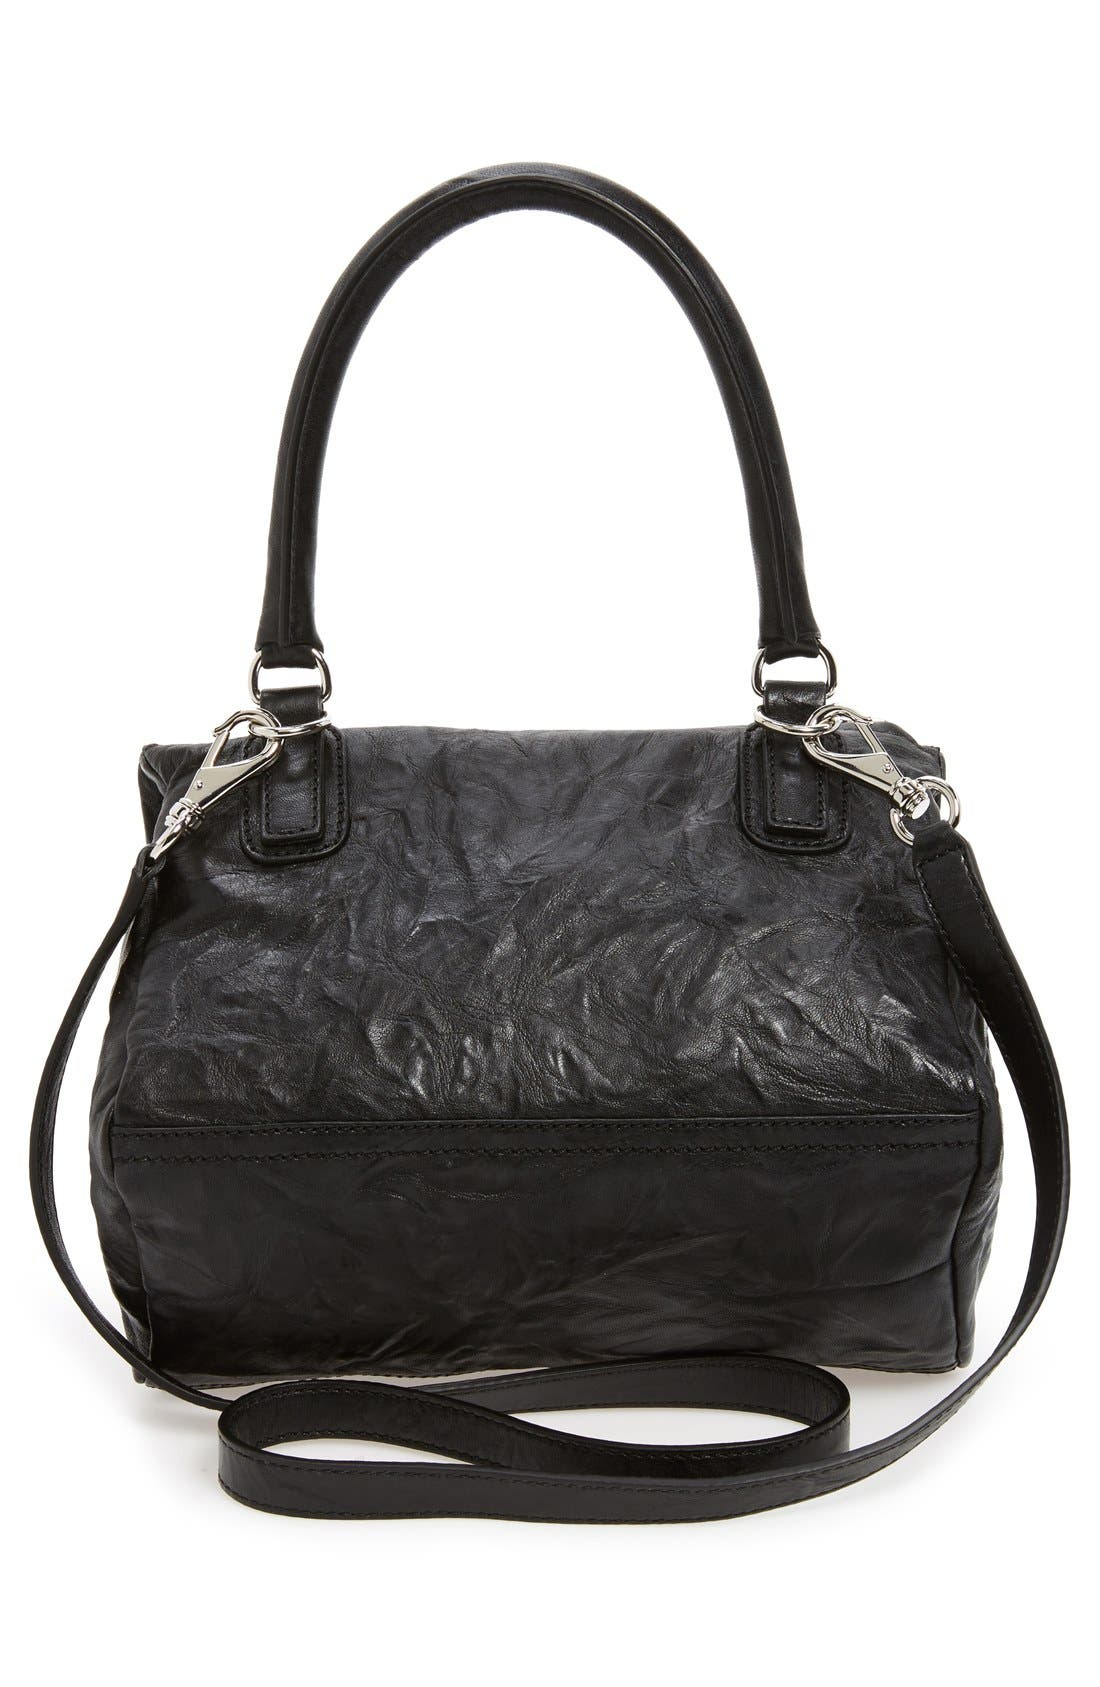 'Small Pepe Pandora' Leather Shoulder Bag,                             Alternate thumbnail 5, color,                             BLACK